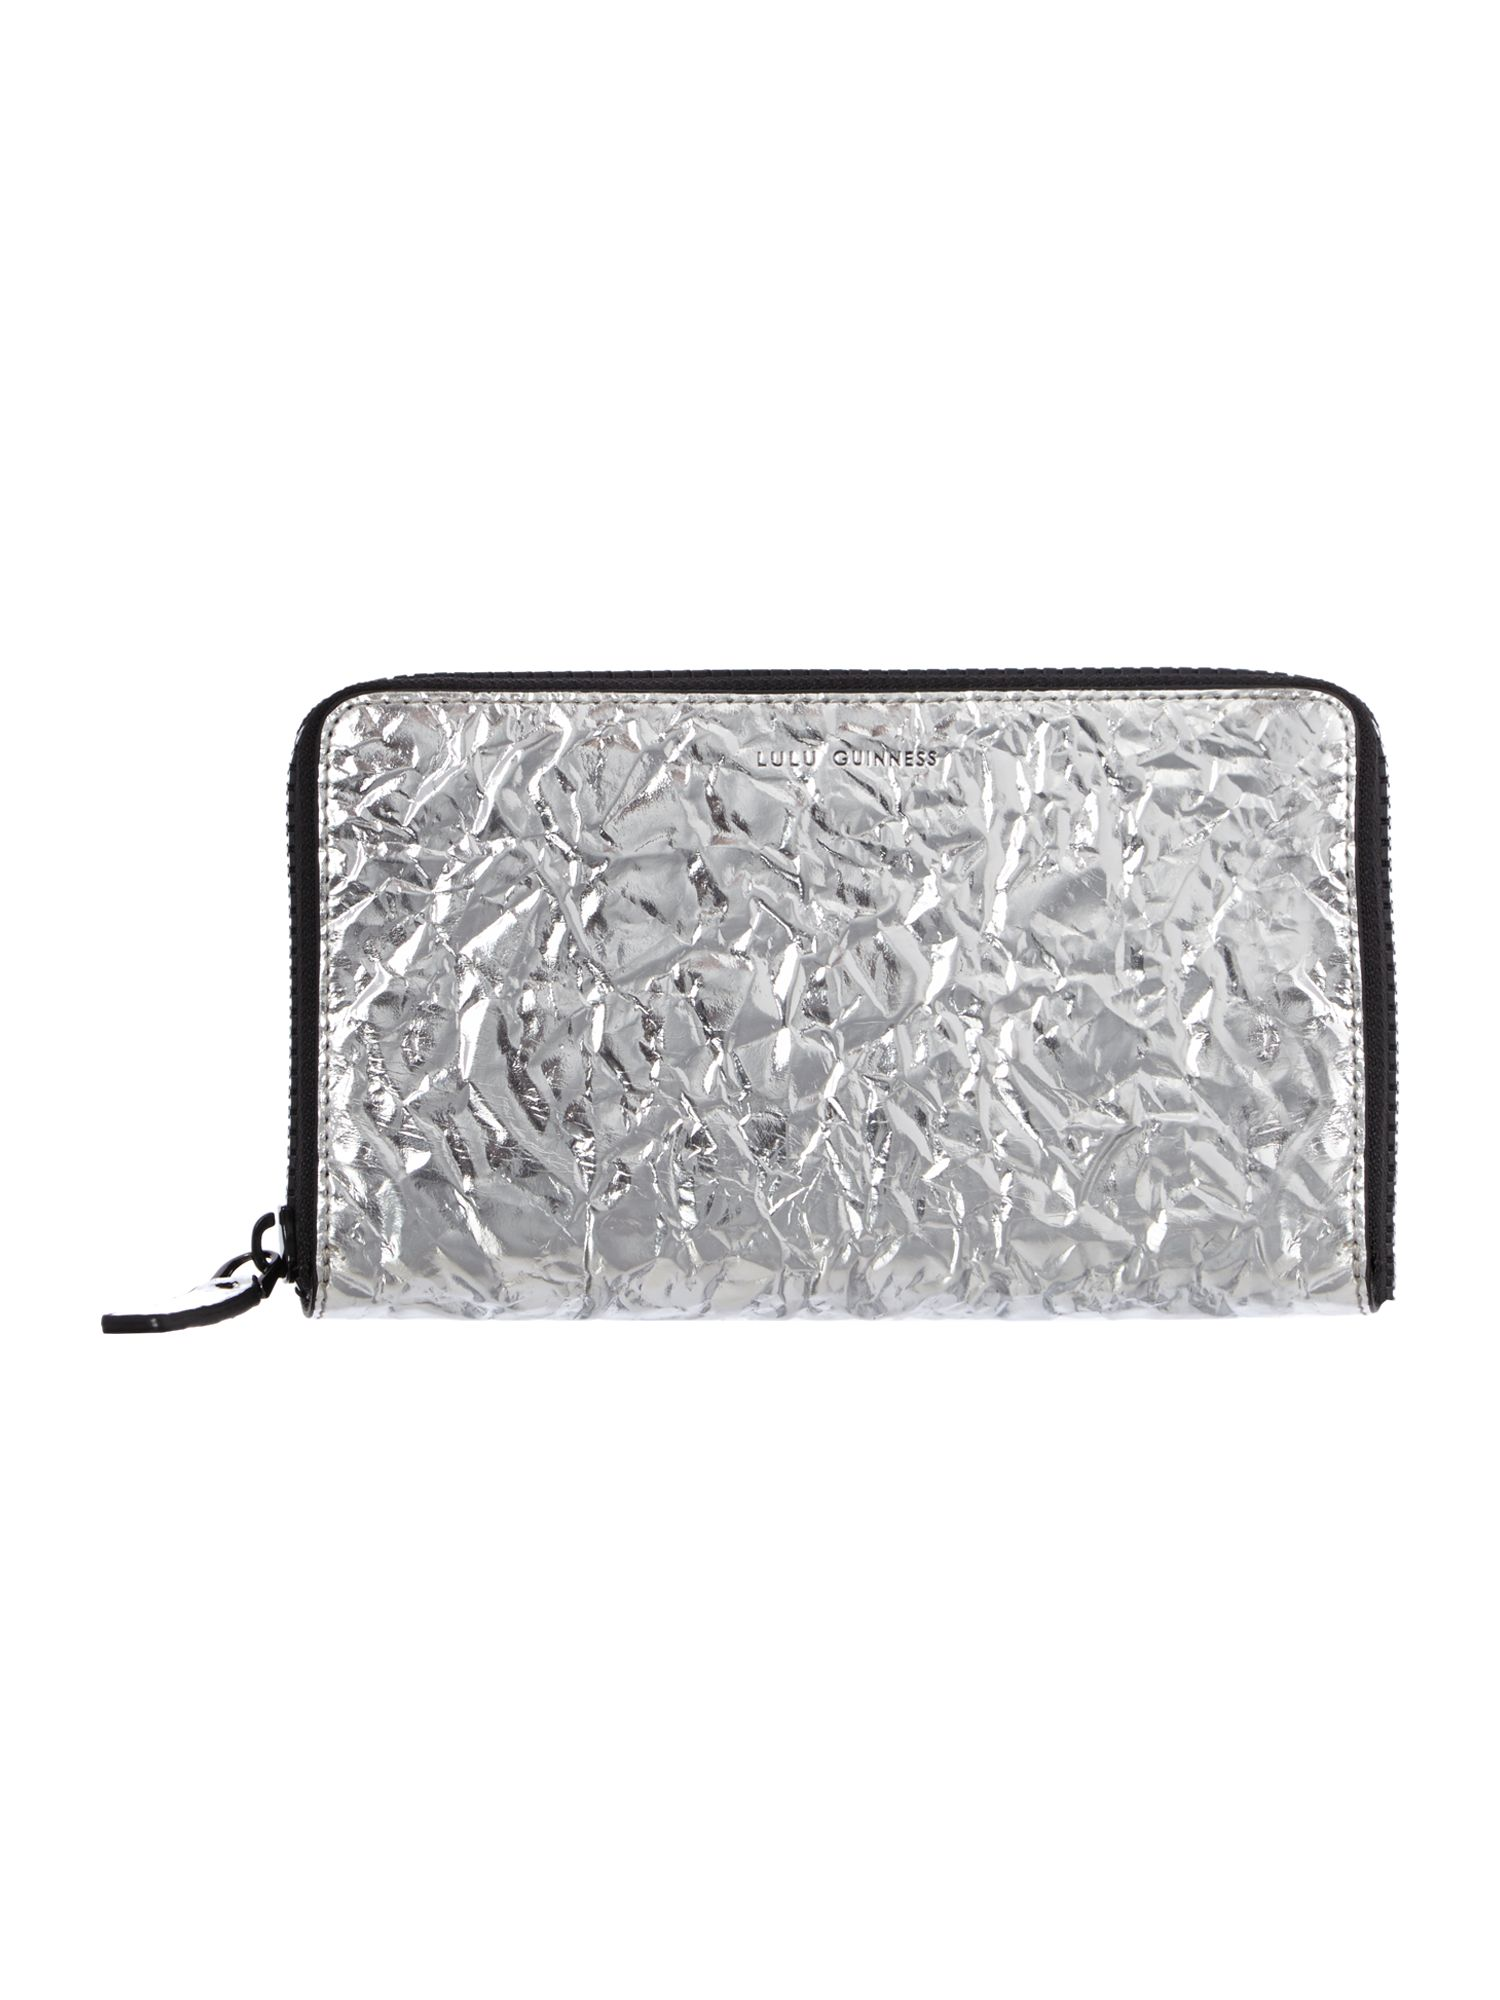 Metallic silver large zip around purse